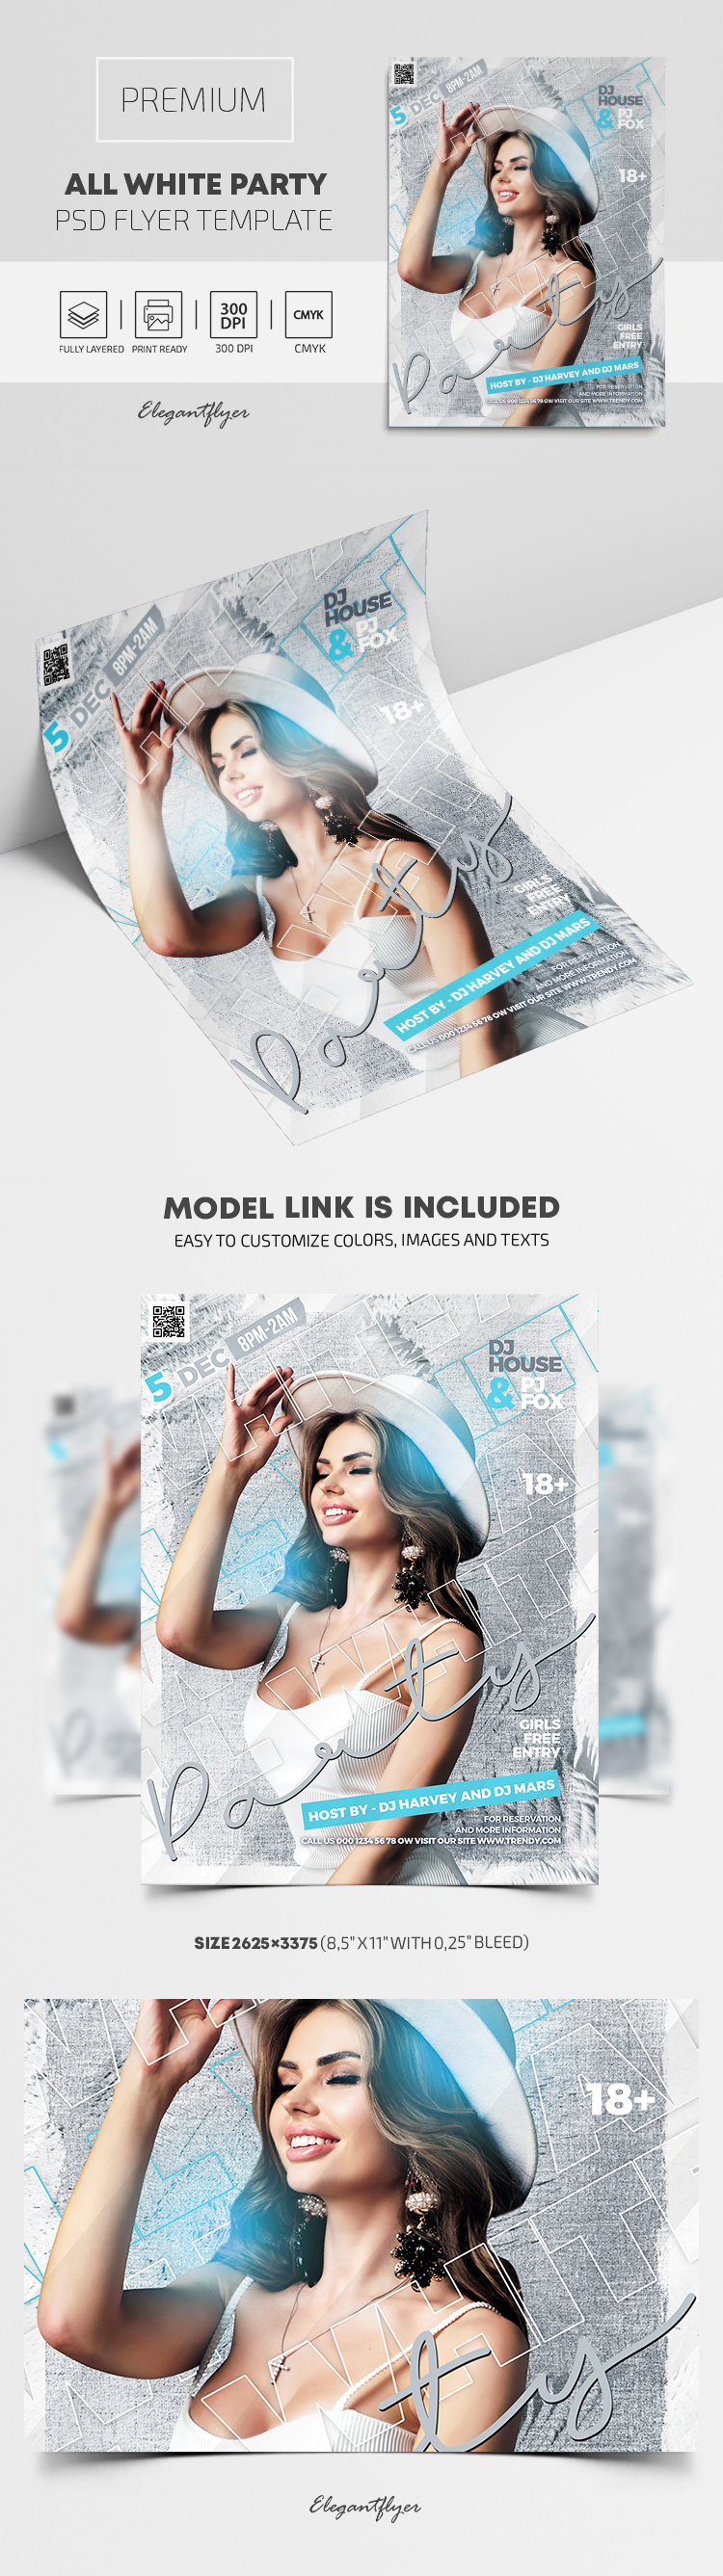 All White Party – Premium PSD Flyer Template